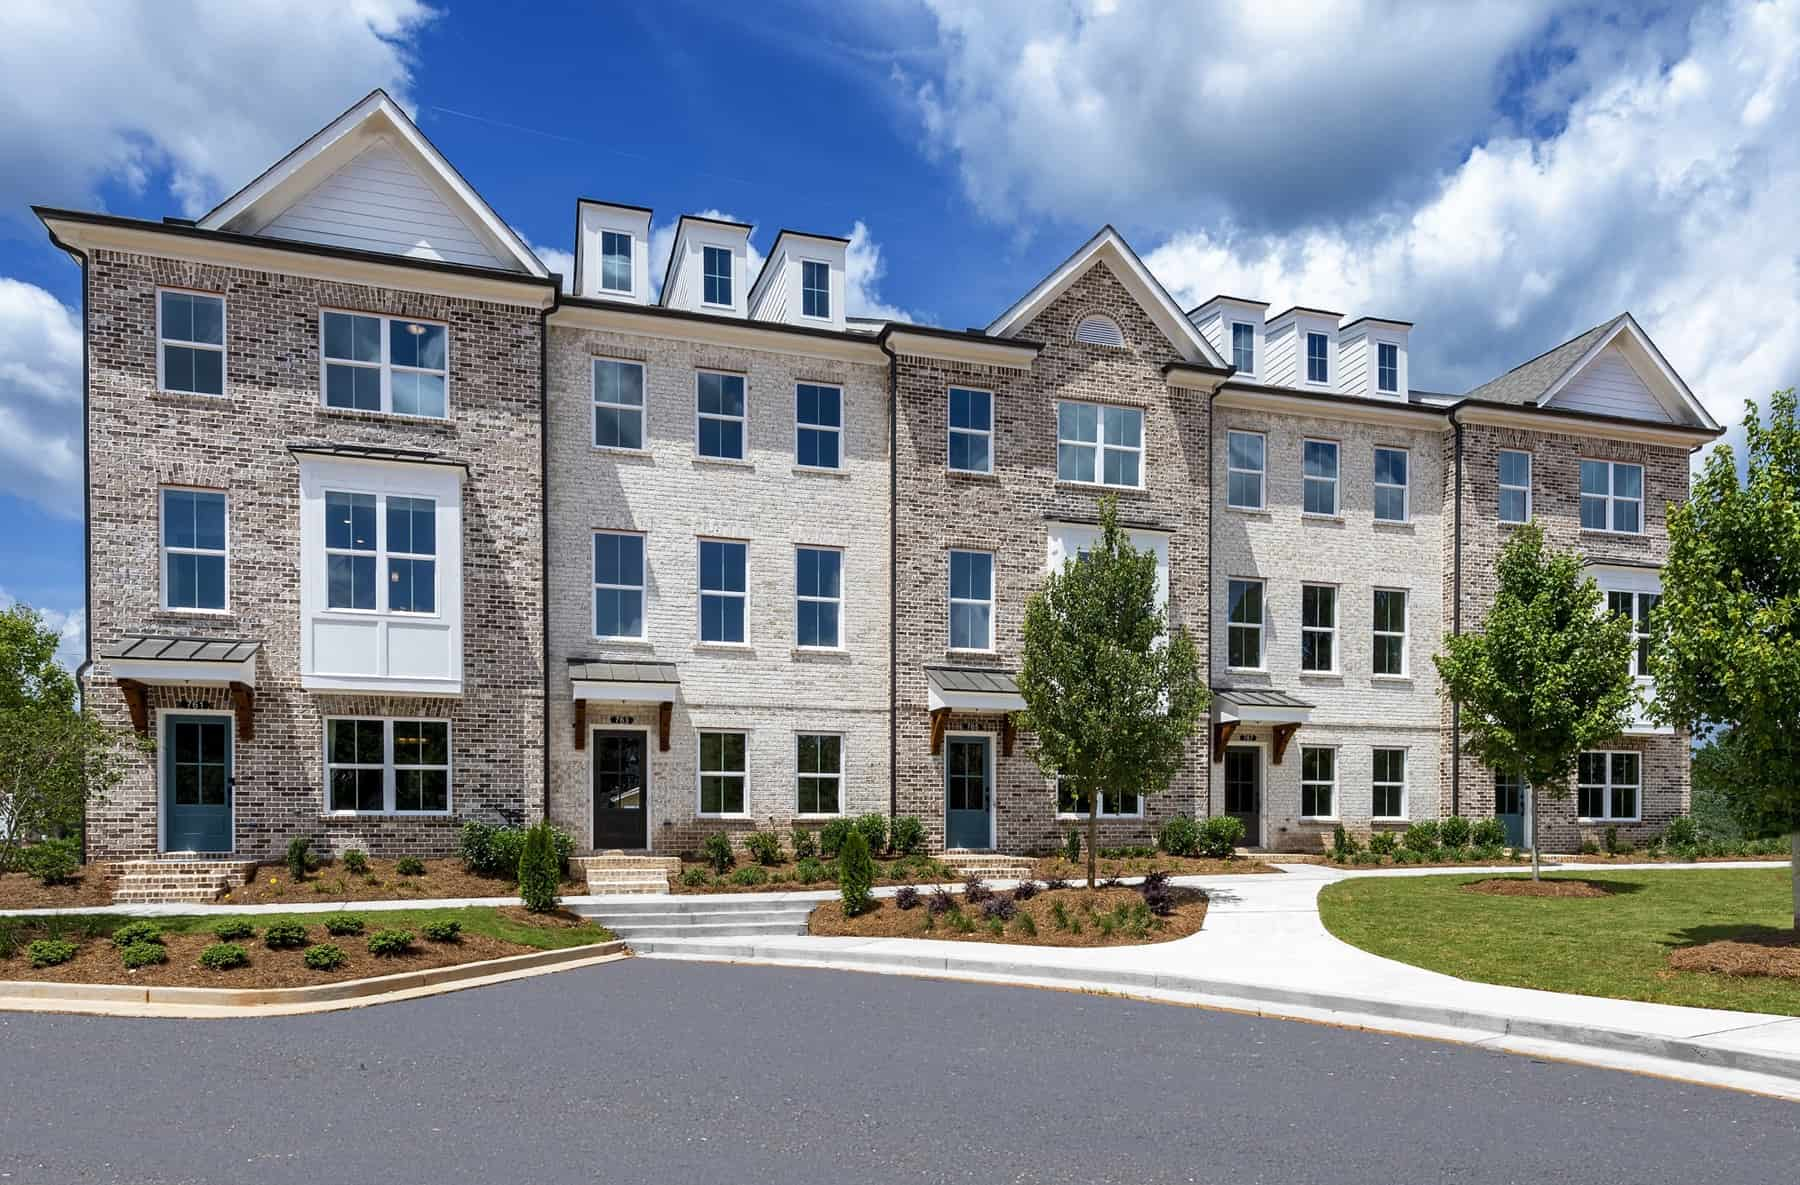 The Providence Group Announces New Home Savings on Limited Inventory